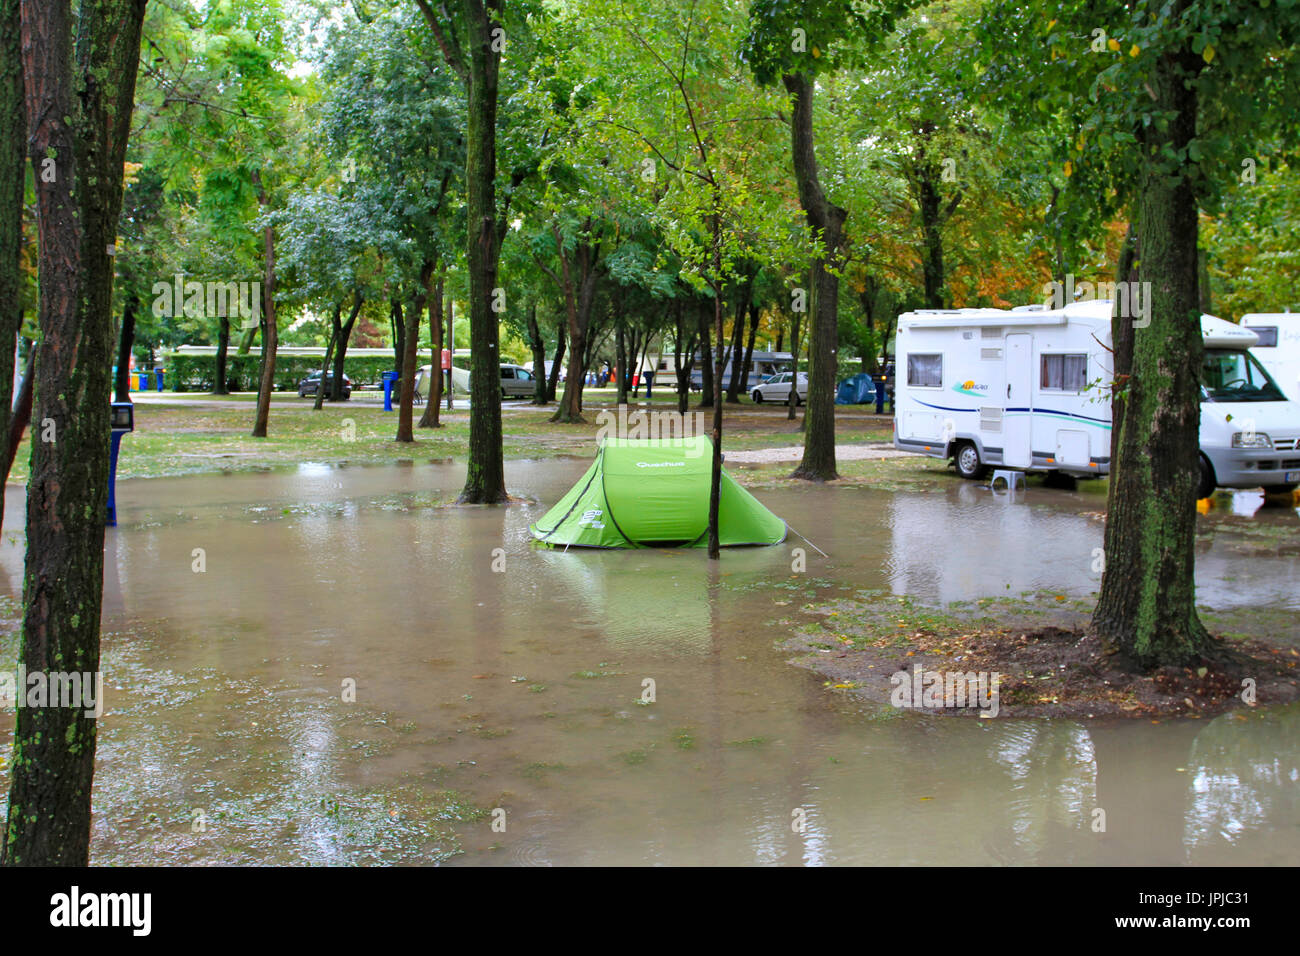 Flood, Flooded campground near Venice, after a thunderstorm, Venice, Italy, Europe - Stock Image